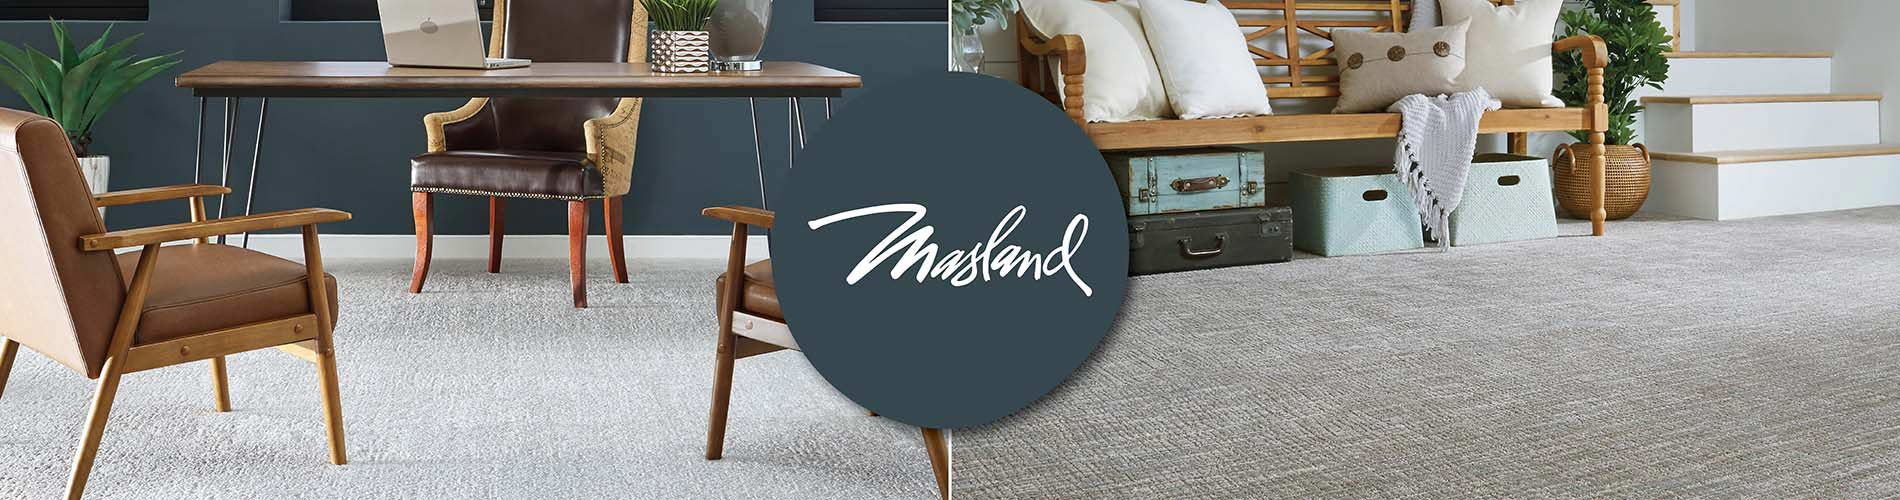 Featuring Masland carpet and rugs.